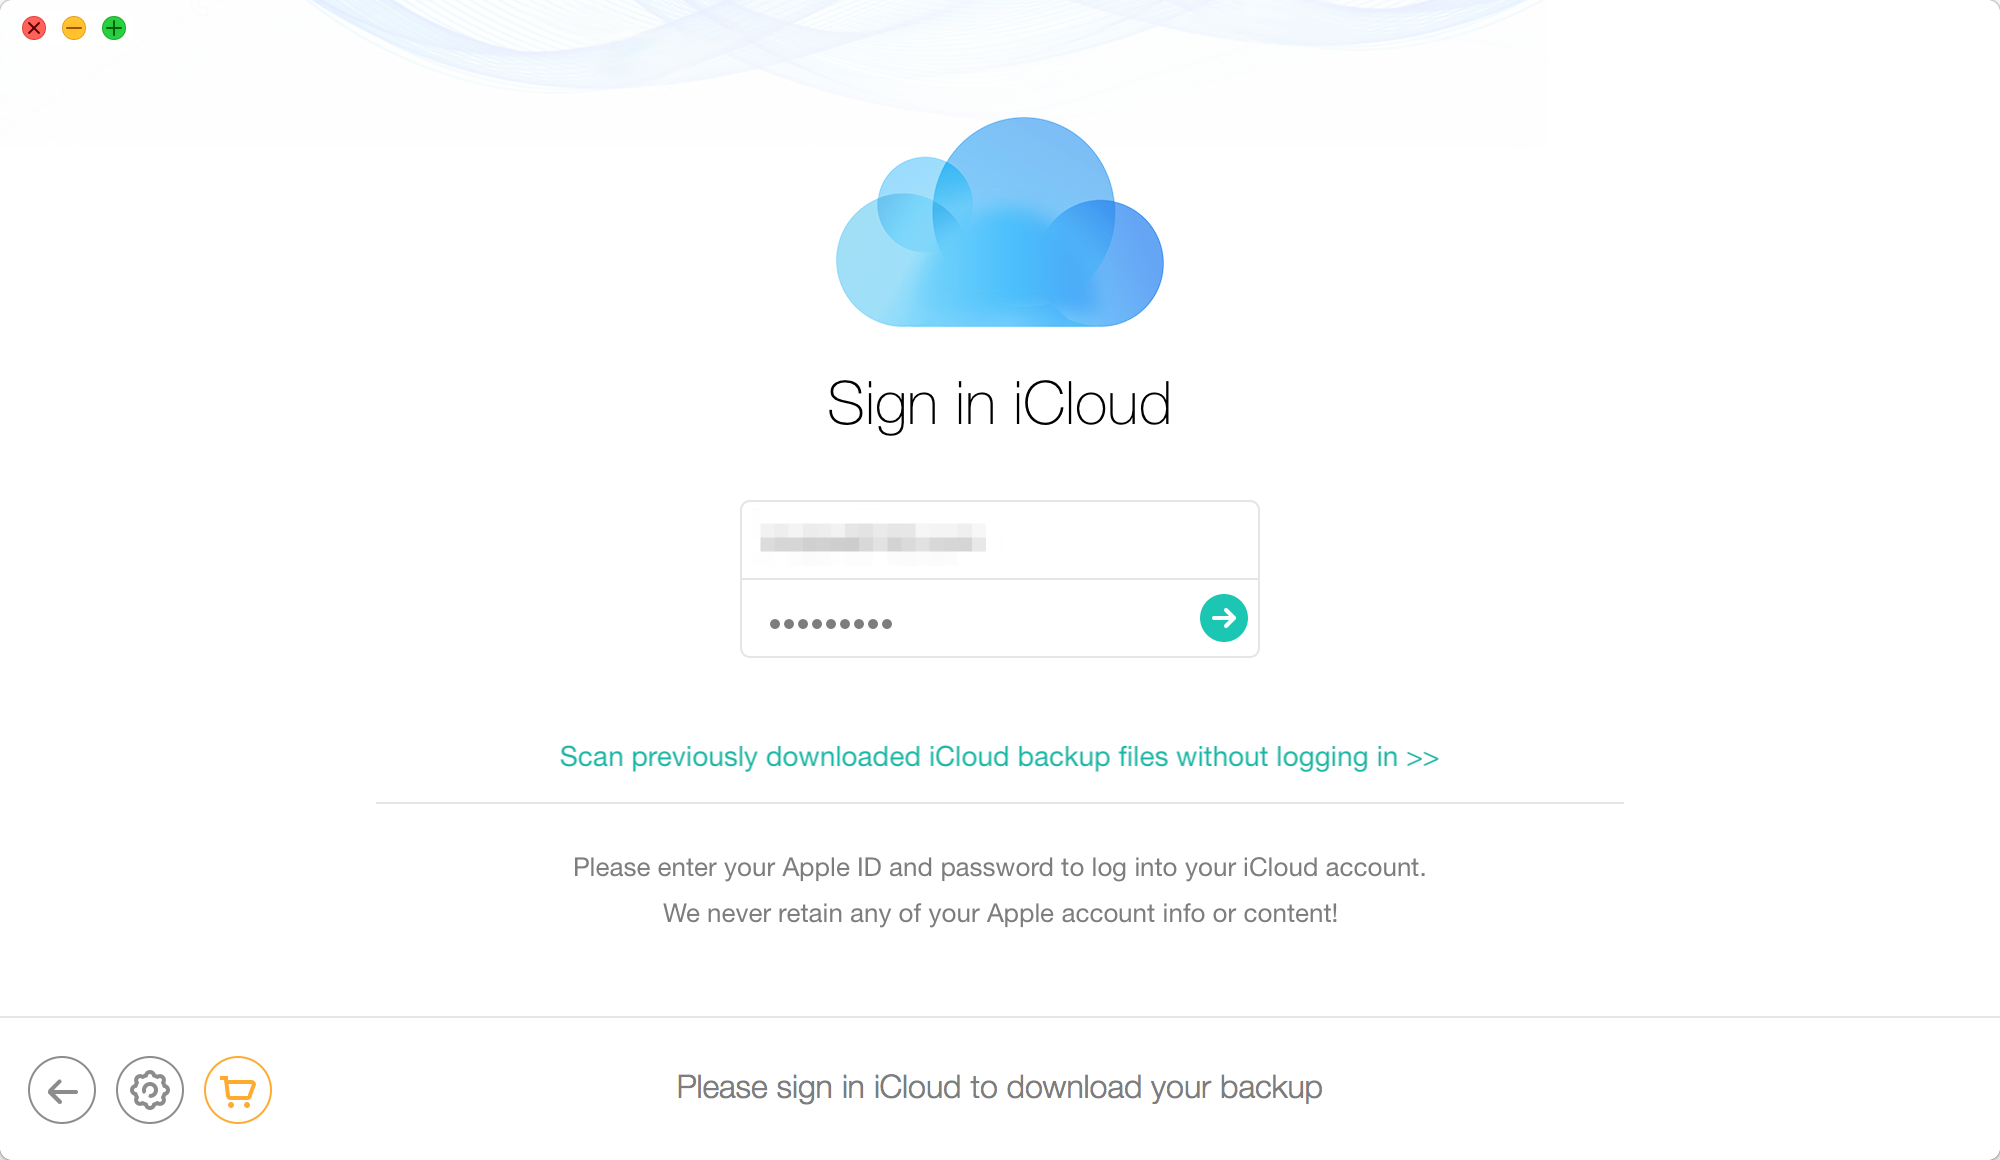 How to Fix iPhone Contacts Disappeared with iCloud Backups - Step 2